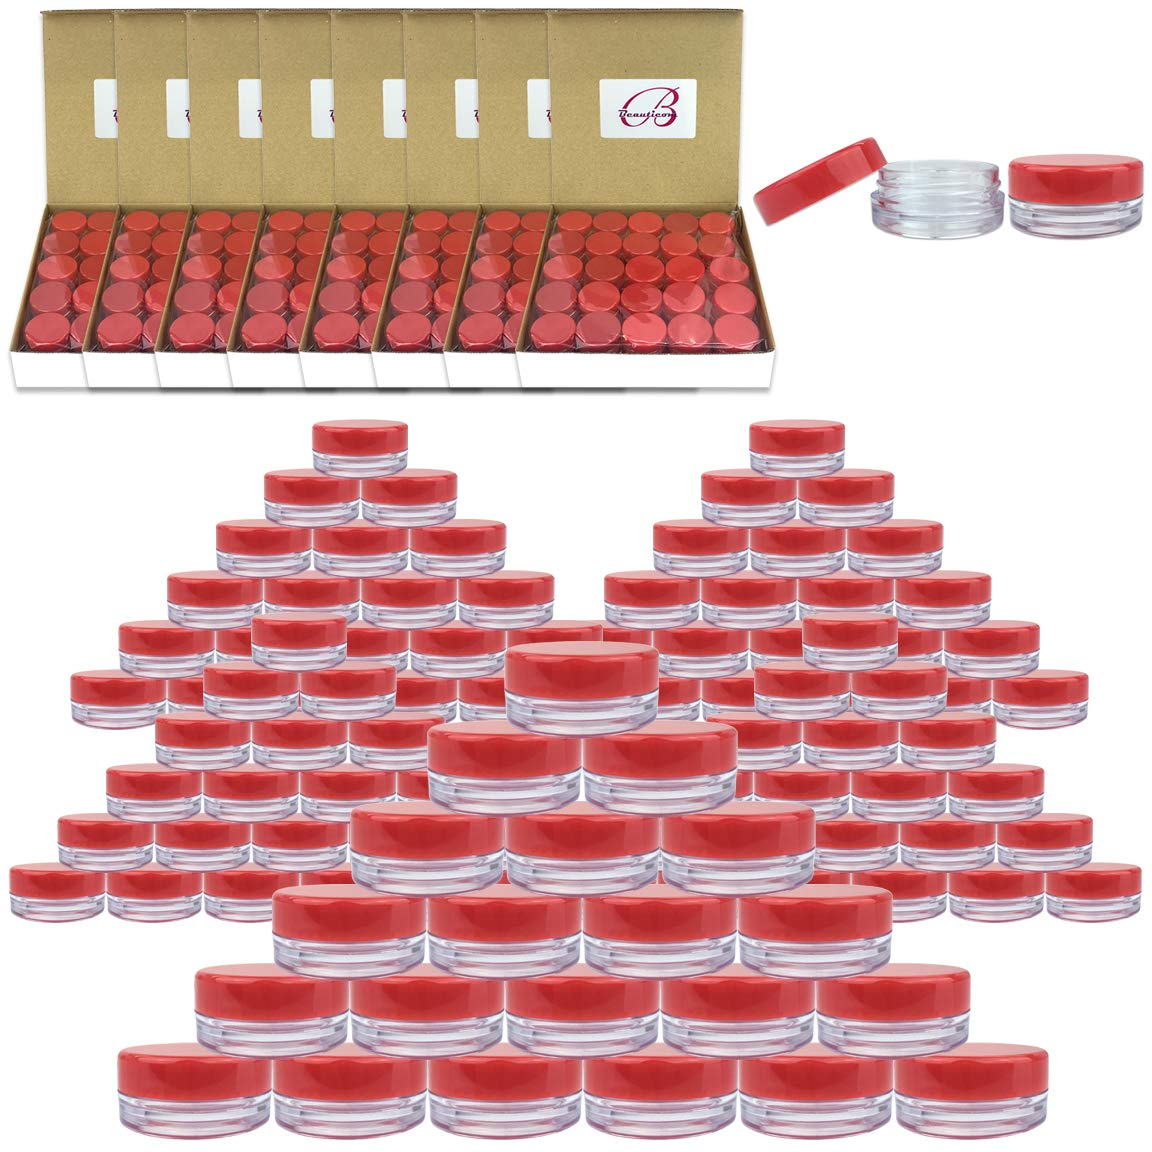 (Quantity: 1000 Pieces) Beauticom 3G/3ML Round Clear Jars with RED Lids for Scrubs, Oils, Toner, Salves, Creams, Lotions, Makeup Samples, Lip Balms - BPA Free